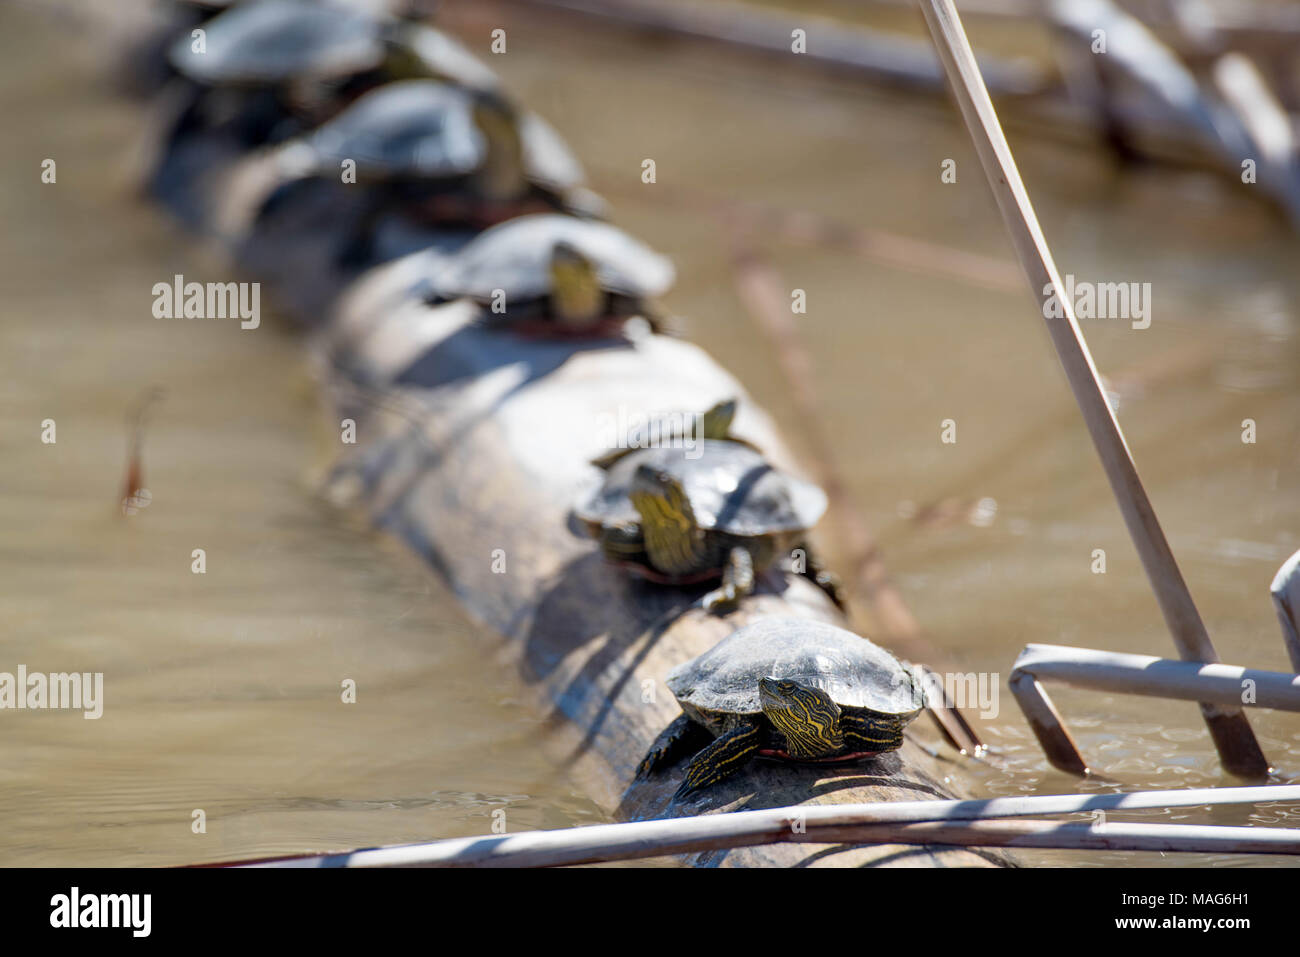 Western Painted Turtles, (Chrysemys pita bellii), basking on a log.  Bosque del Apache National Wildlife Refuge, New Mexico, USA. - Stock Image